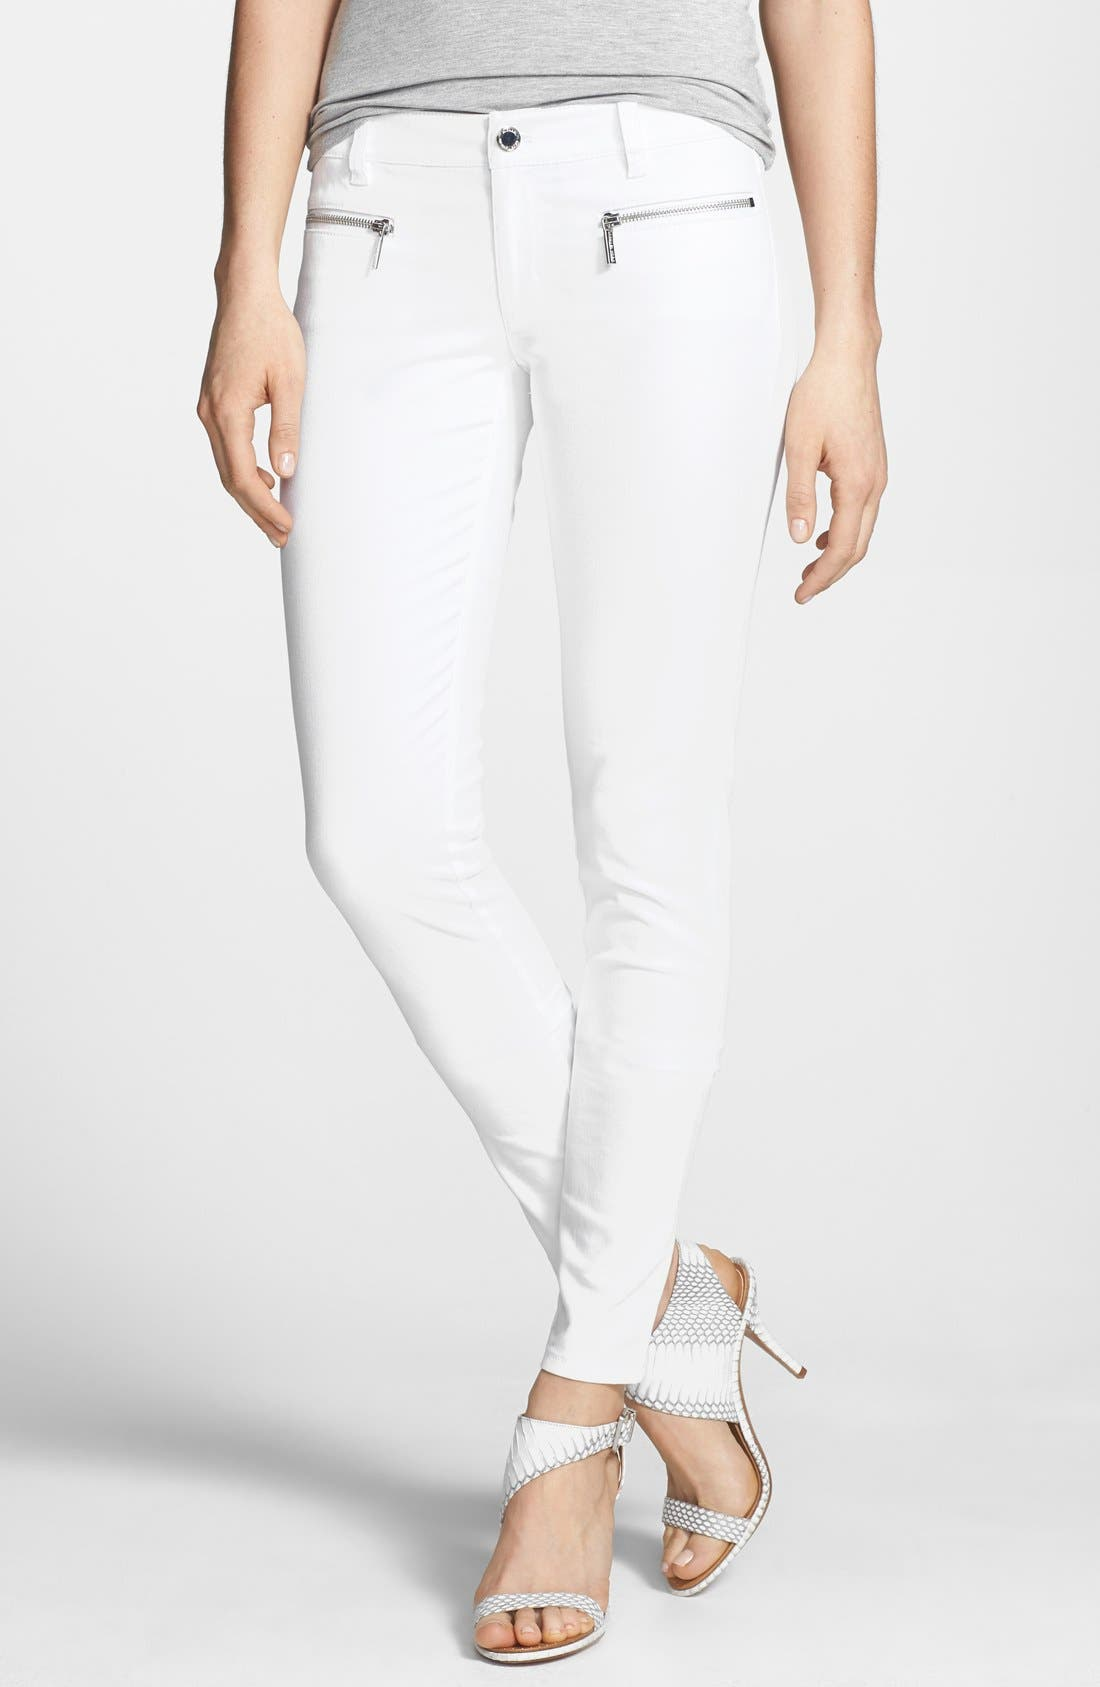 Alternate Image 1 Selected - MICHAEL Michael Kors Zip Detail Skinny Jeans (Regular & Petite)